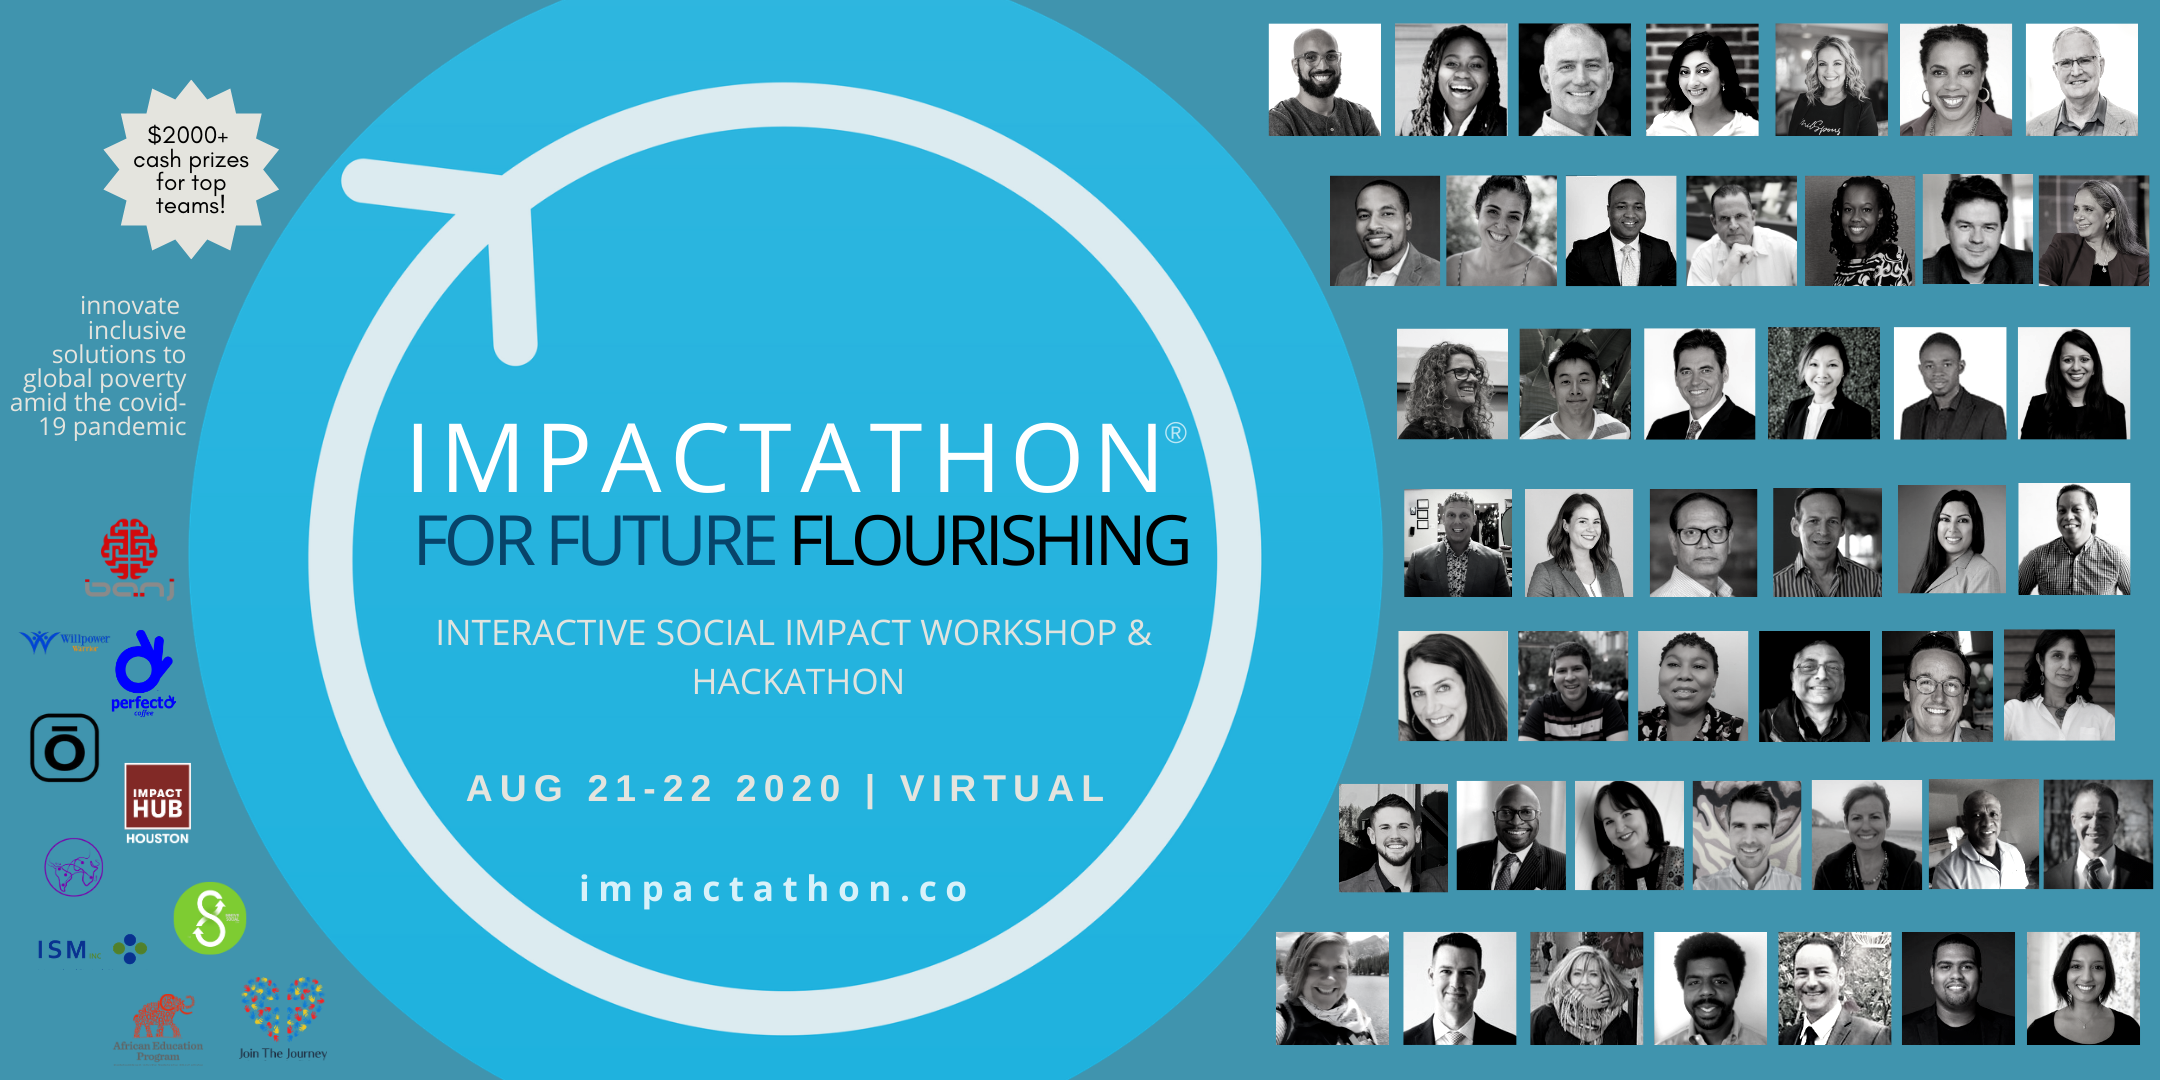 Impactathon for Future Flourishing event image with Impactathon logo and black and white photos of Impact Catalysts